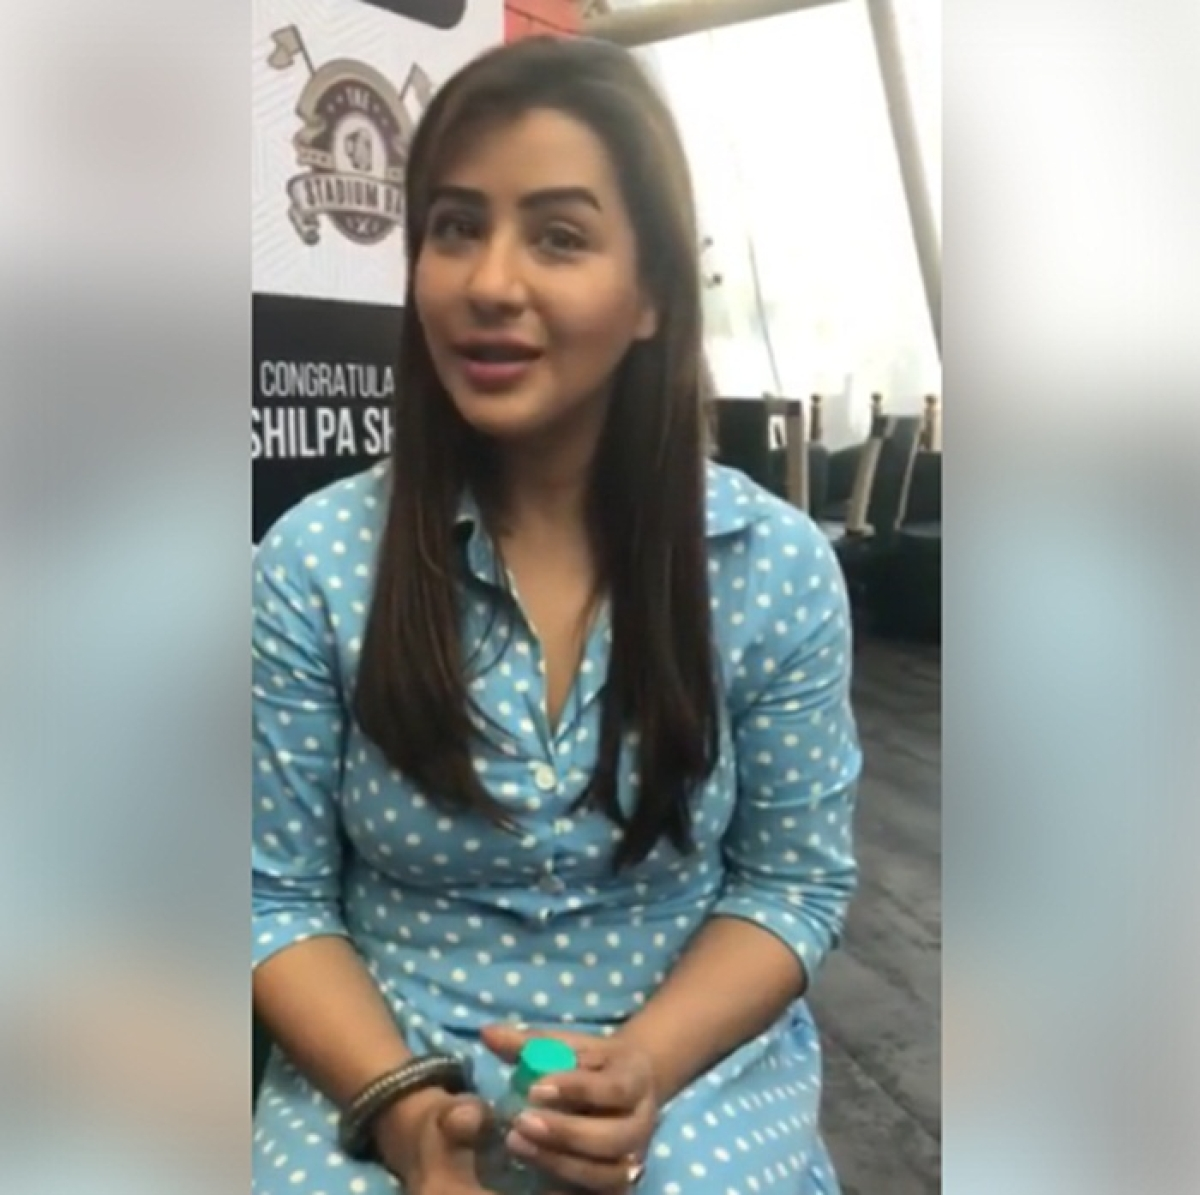 Bigg Boss 11 winner Shilpa Shinde: Salman Khan has not offered me any movie